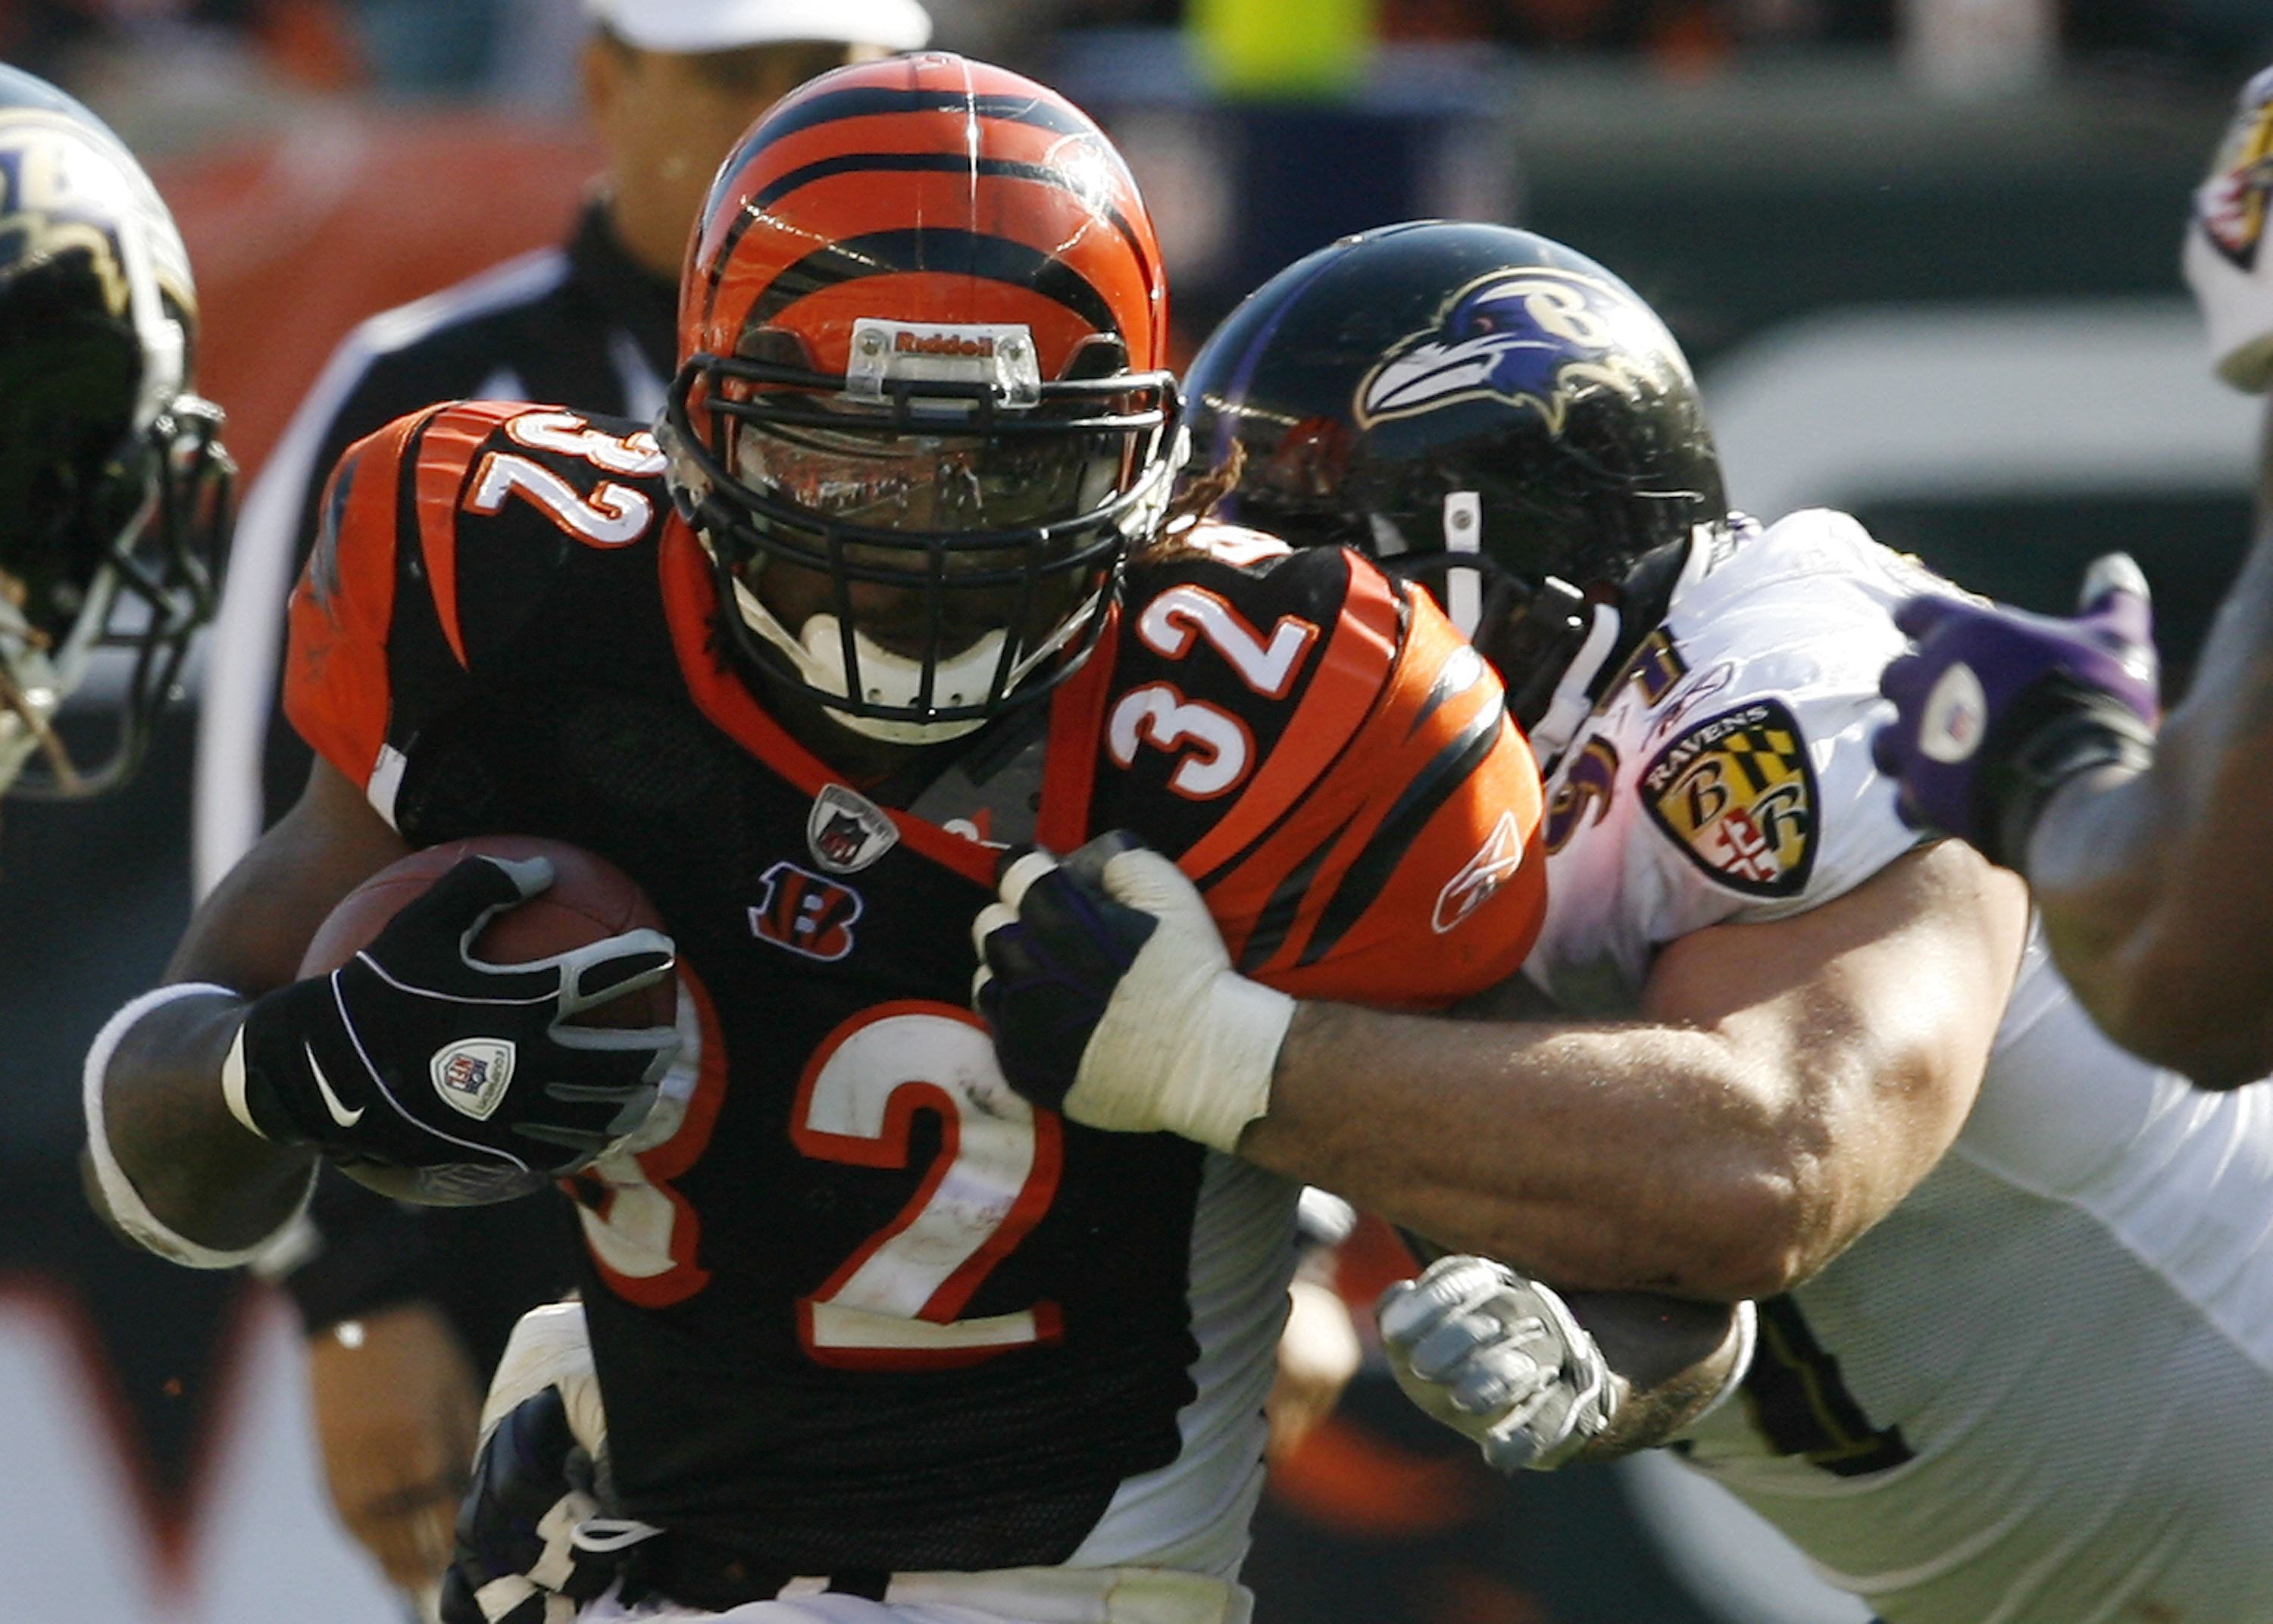 CINCINNATI - NOVEMBER 8: Cedric Benson #32 of the Cincinnati Bengals is tackled by Kelly Gregg #97 of the Baltimore Ravens at Paul Brown Stadium on November 8, 2009 in Cincinnati, Ohio.  (Photo by John Sommers II/Getty Images)